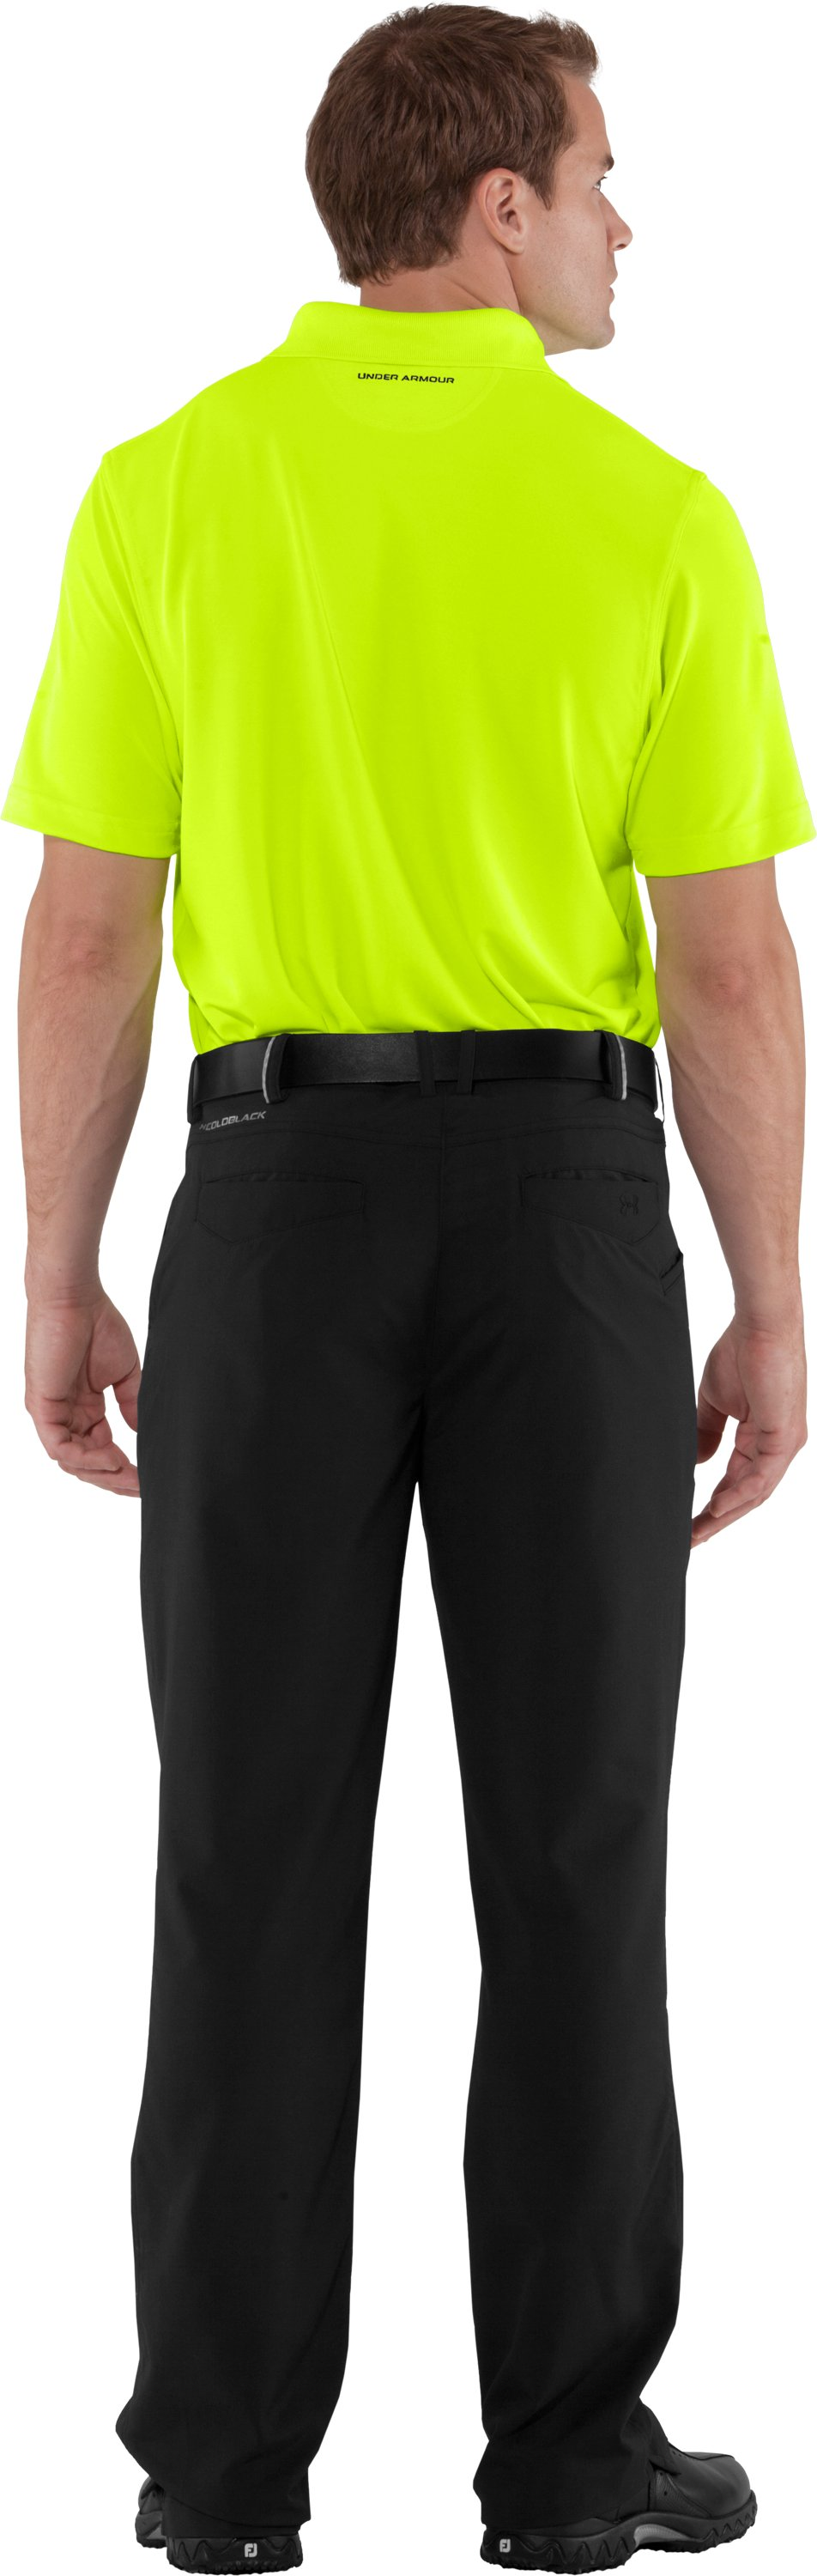 Men's UA Performance Polo — Regular Fit, High-Vis Yellow, Back